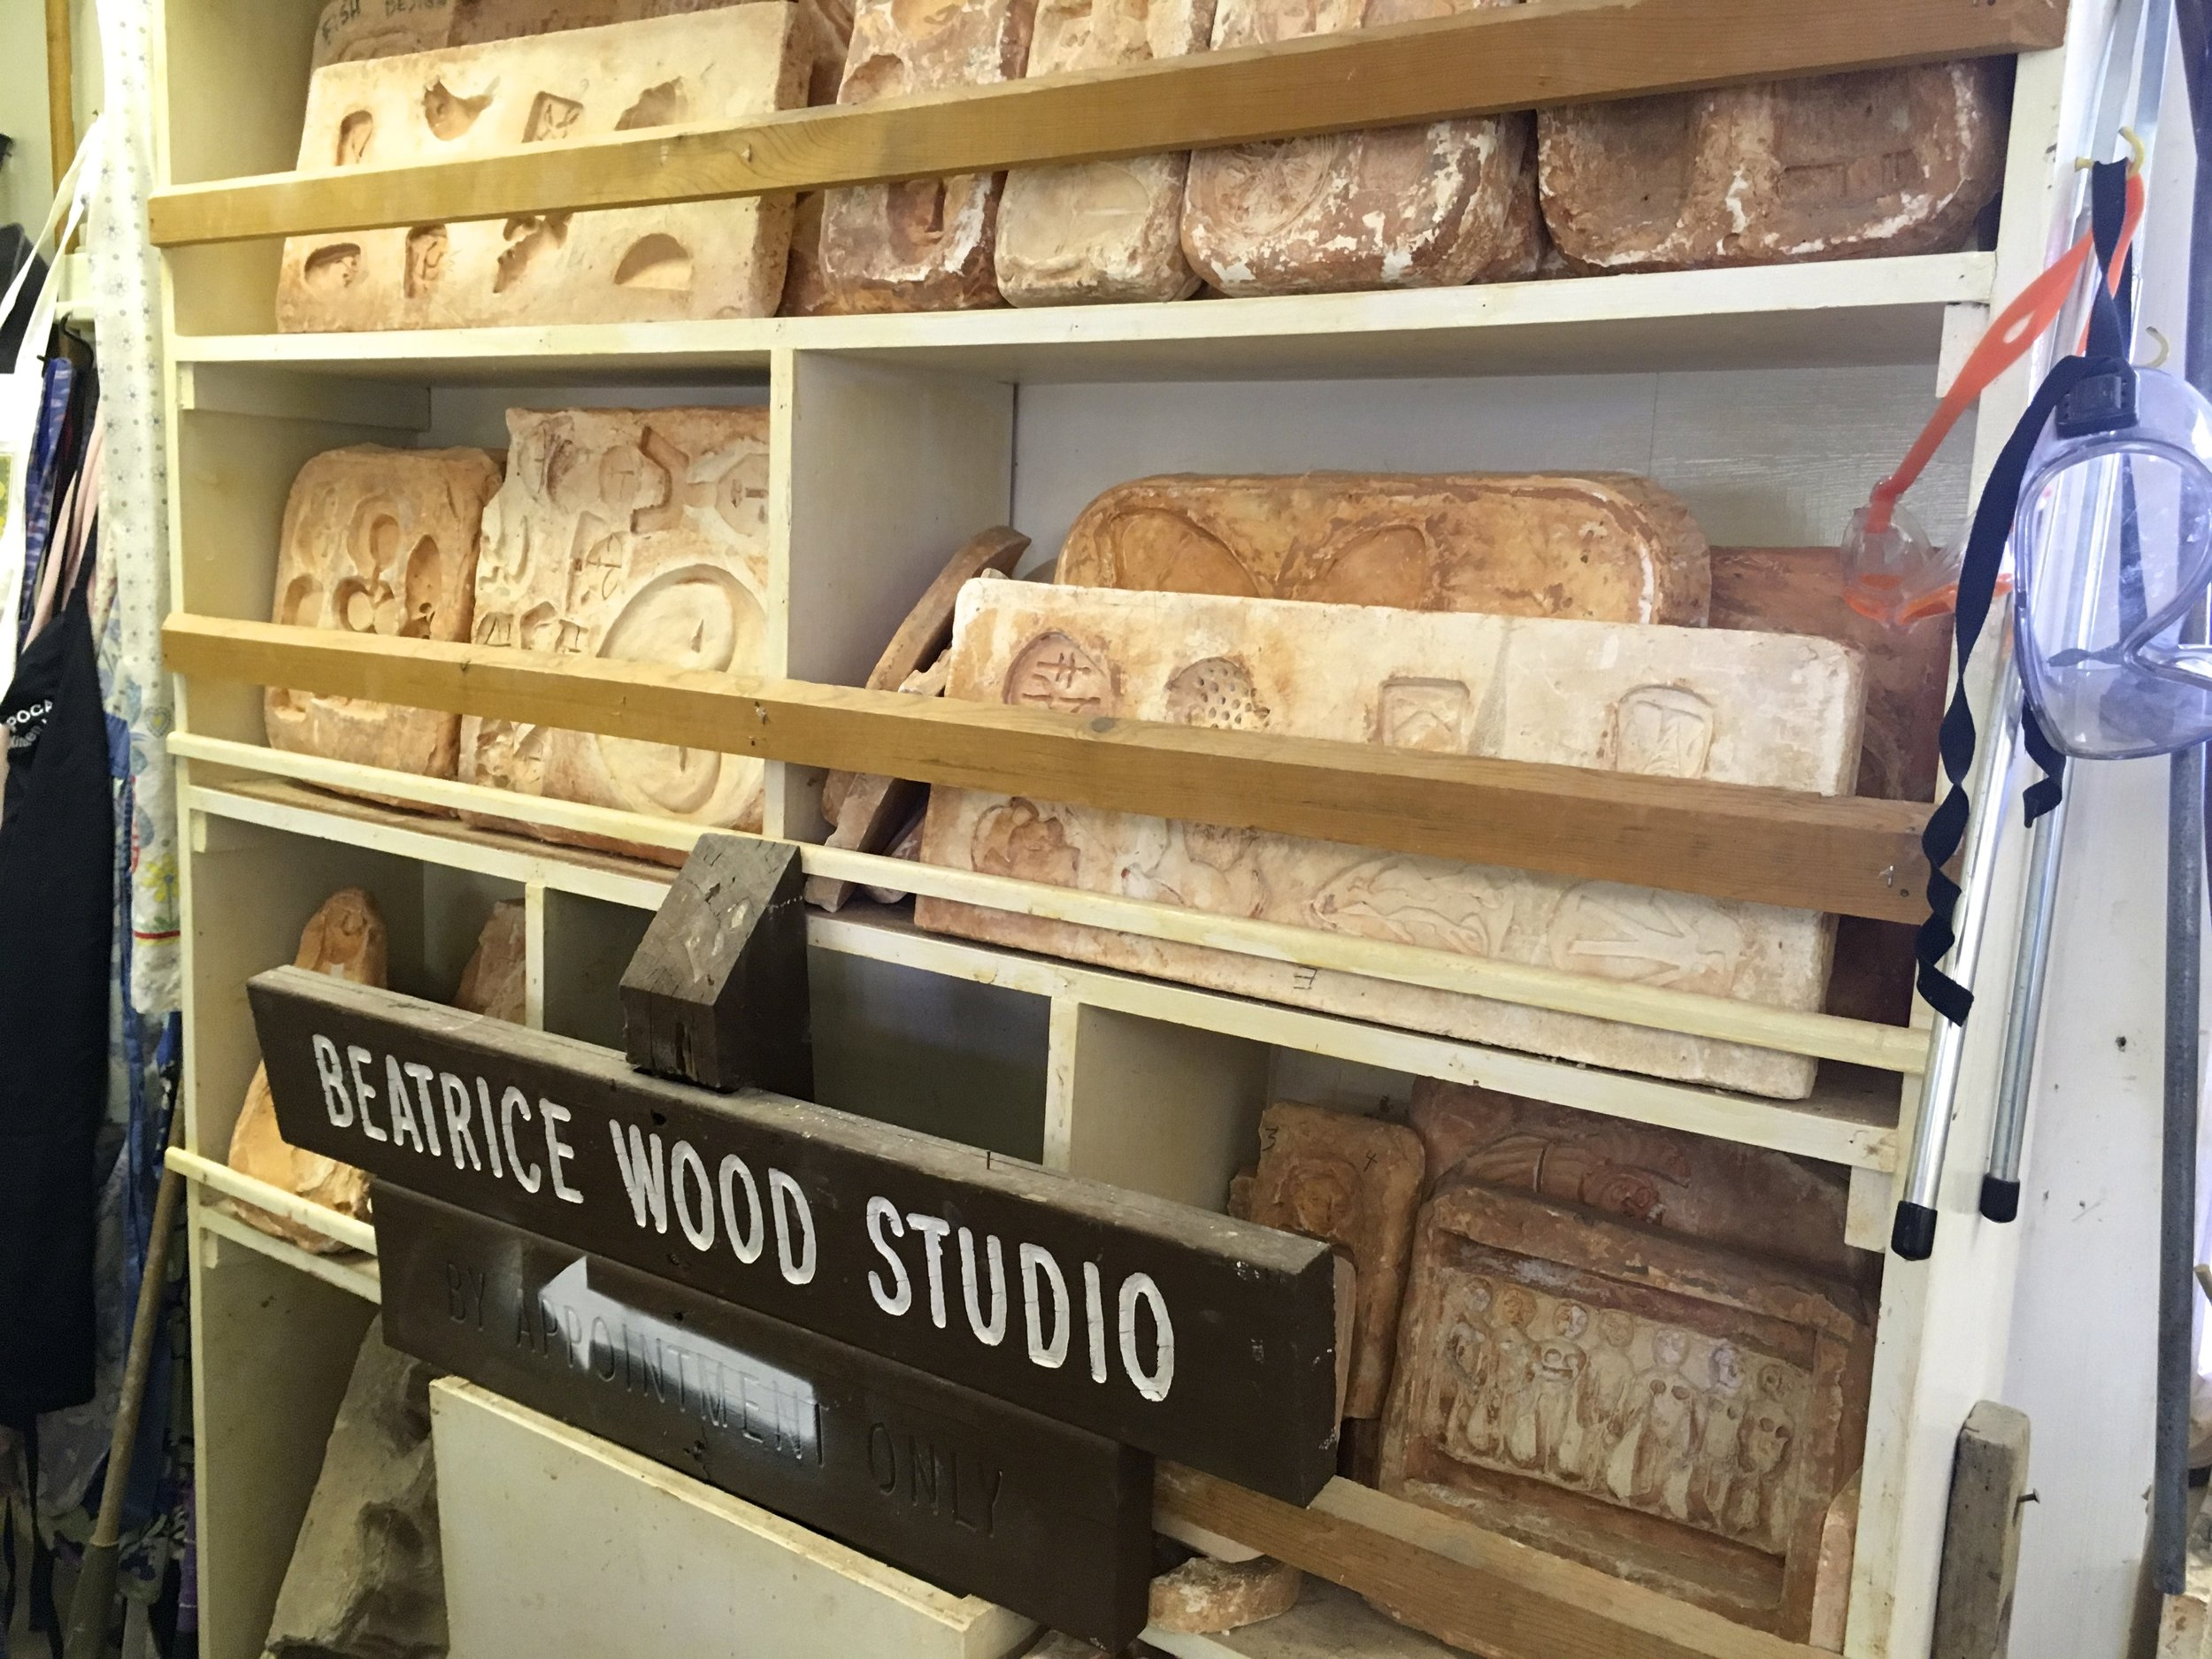 These are Beatrice Wood's molds and aprons that she used.  This is a living museum! -